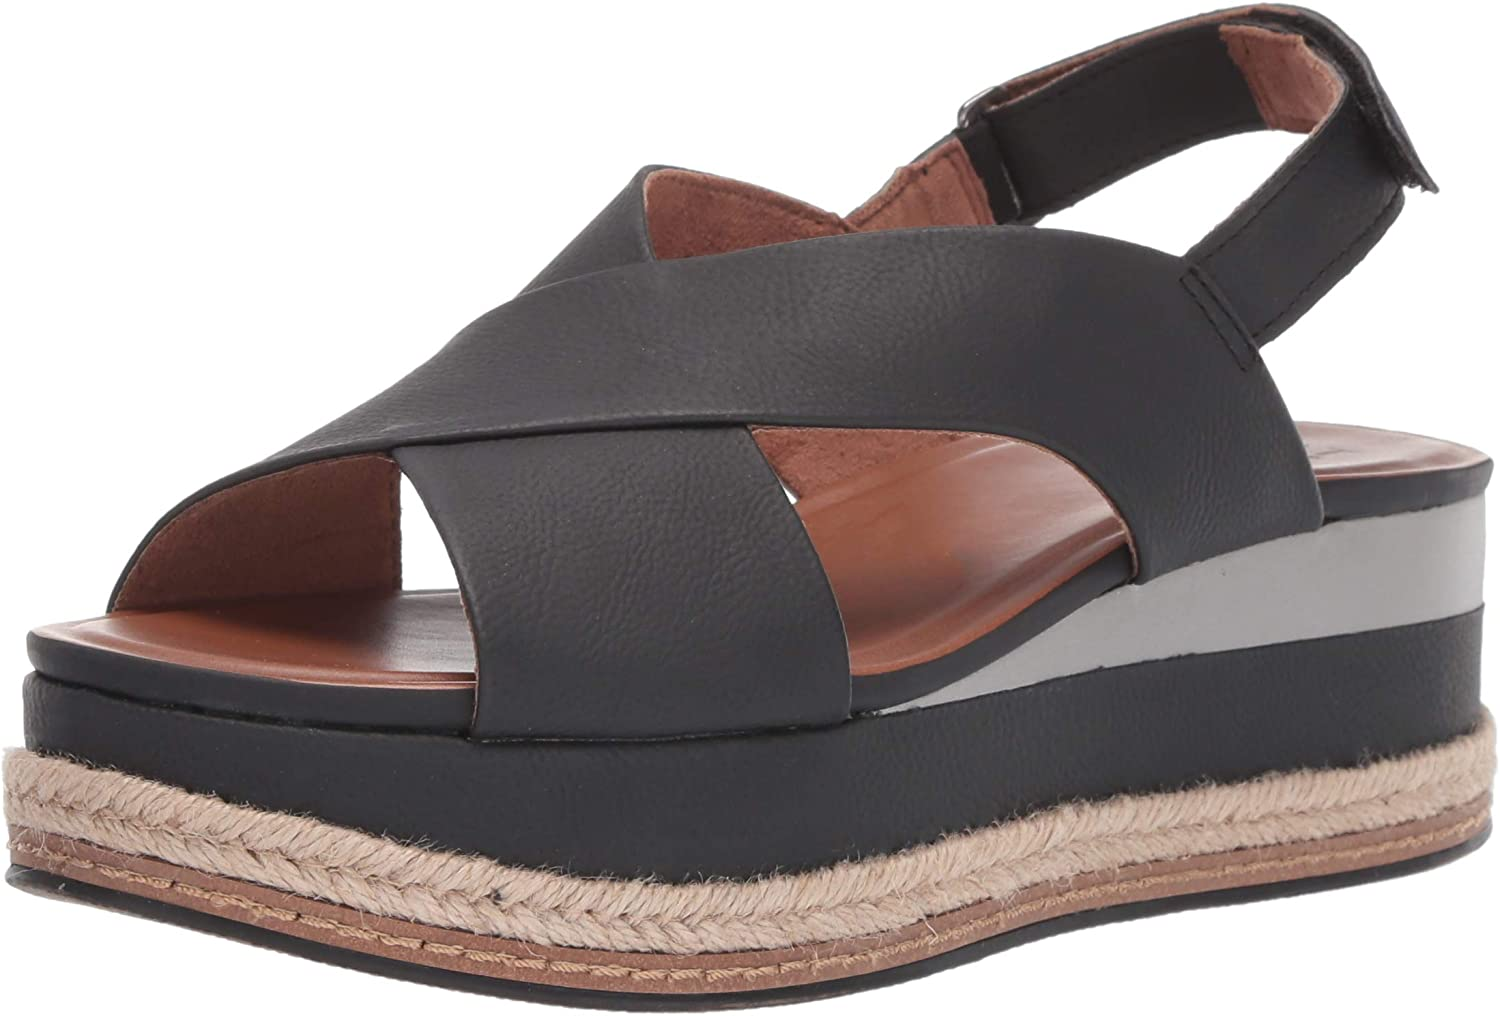 Naturalizer Limited time for free shipping Women's Baya Sandal Wedge Financial sales sale